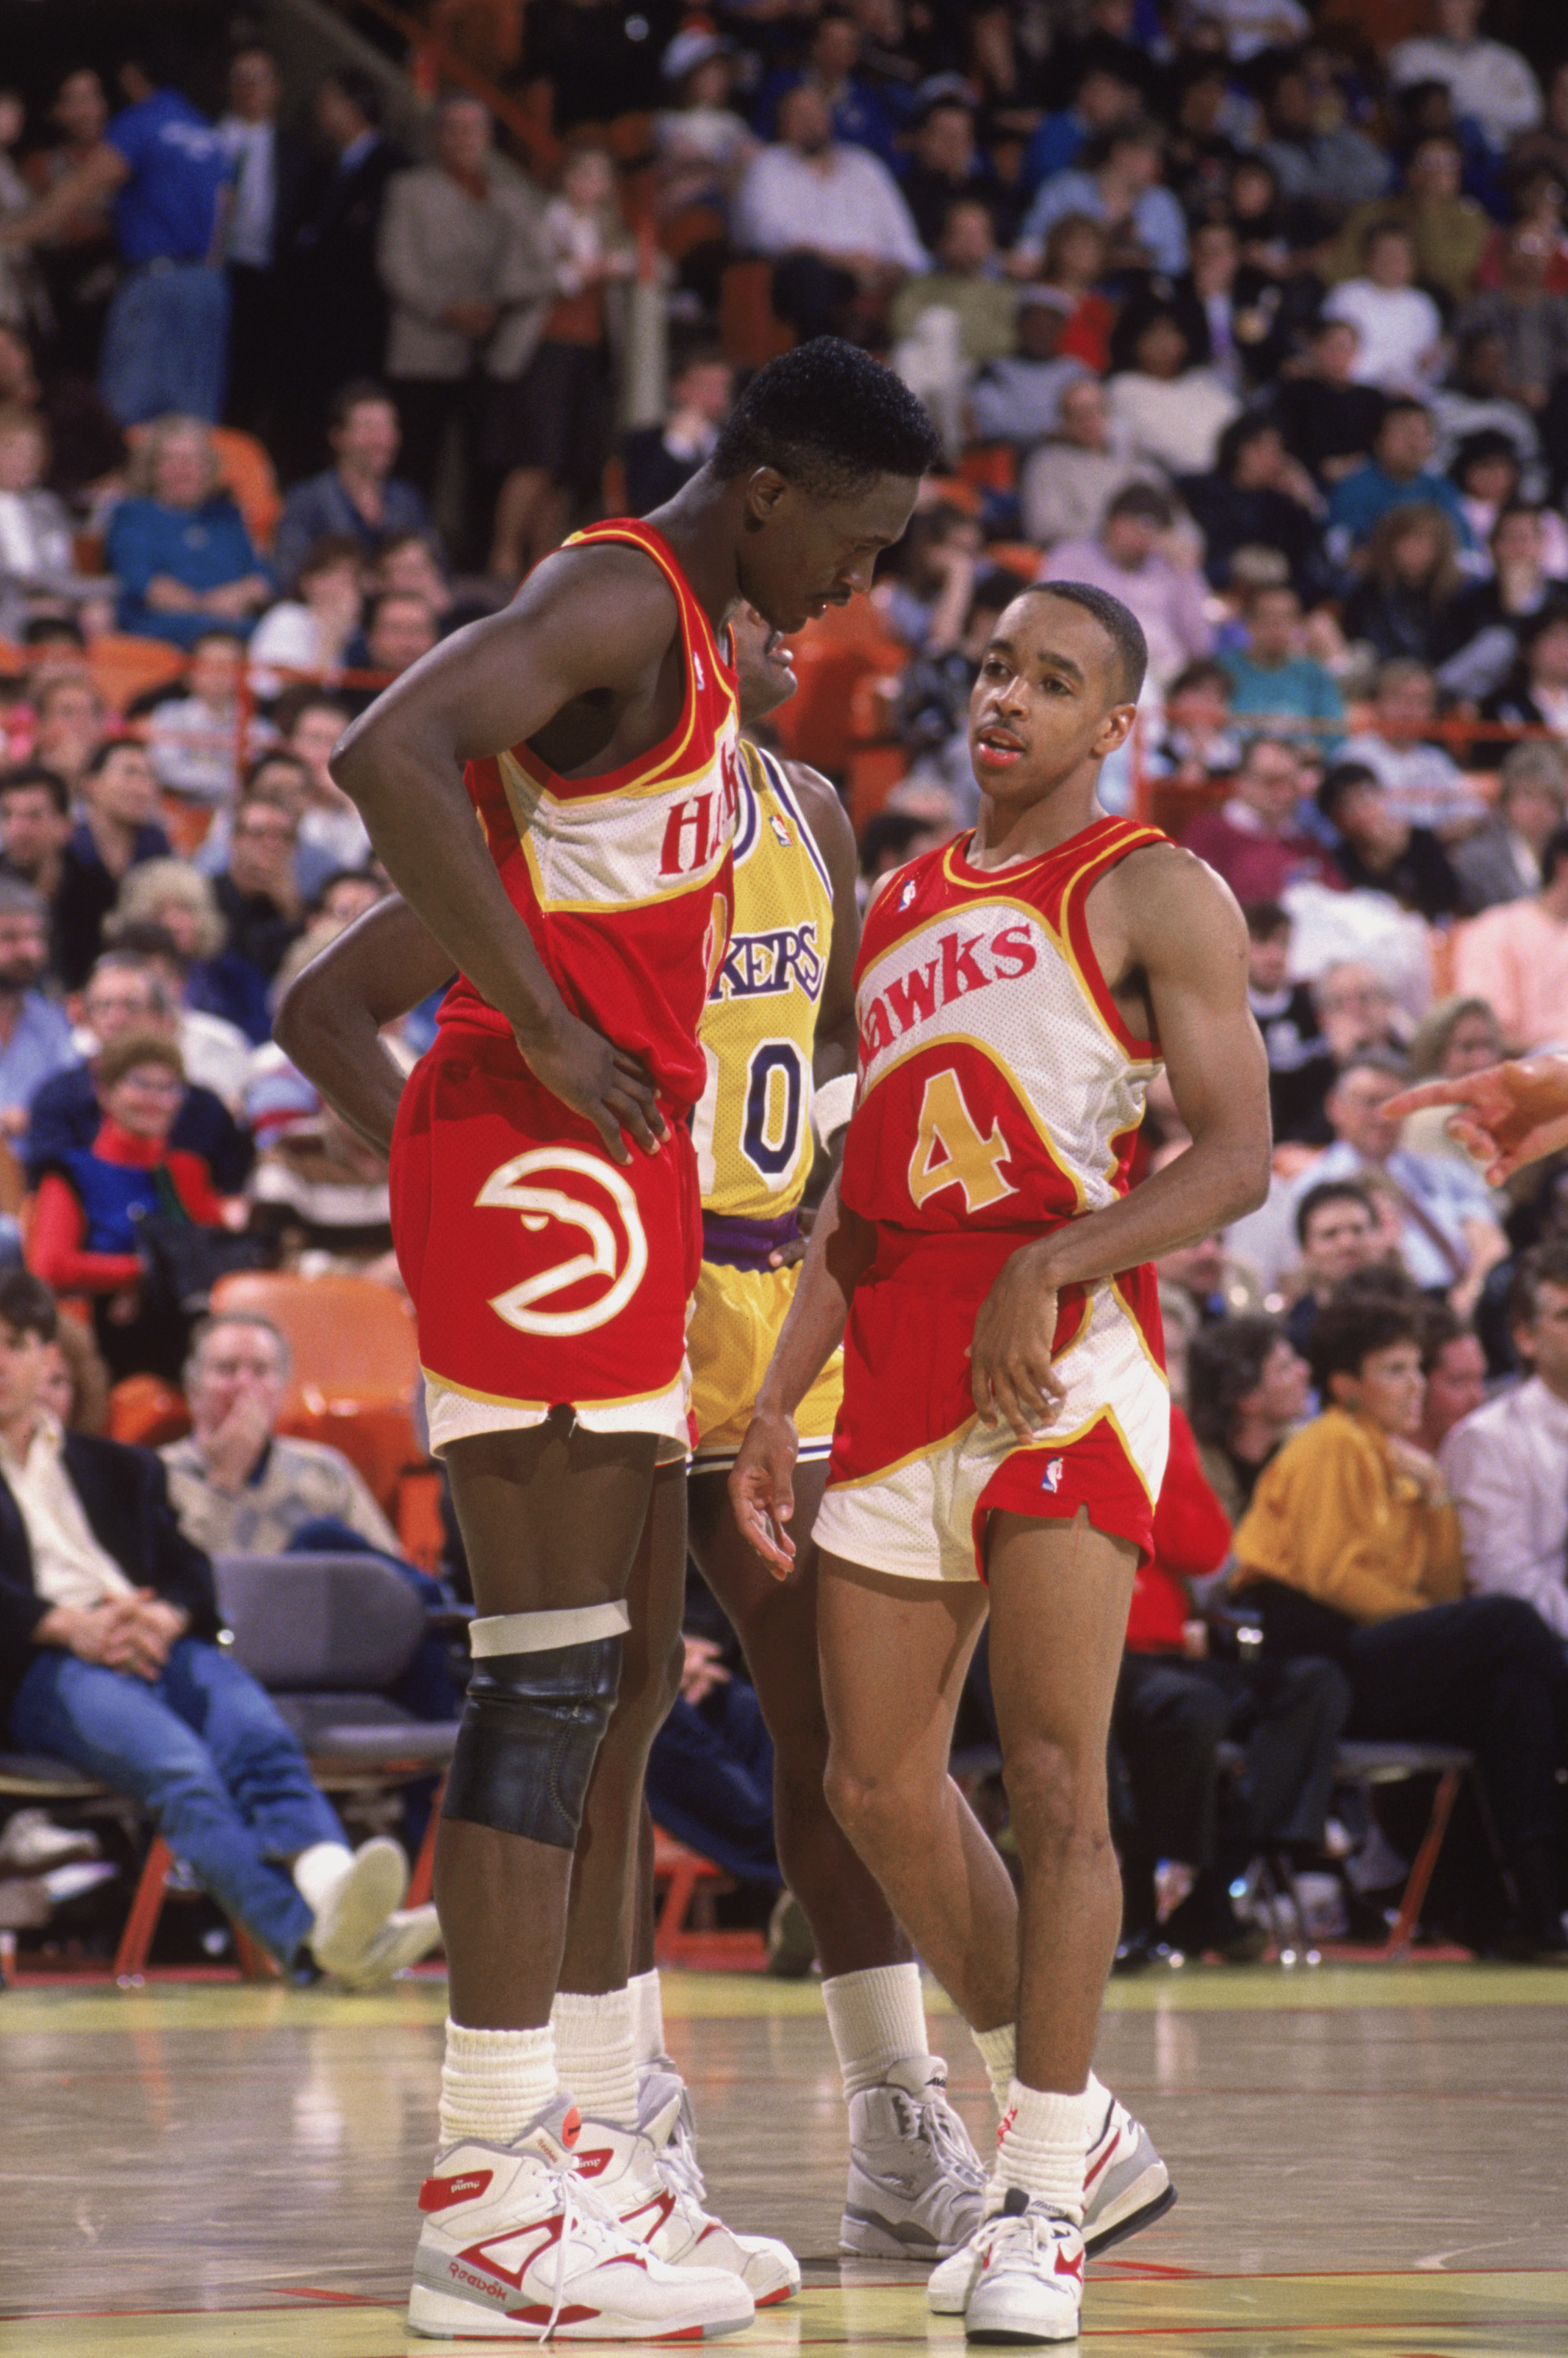 INGLEWOOD, CA - 1989:  Spud Webb #4 of the Atlanta Hawks listens to teammate Dominique Wilkins #21 during a NBA game against the Los Angeles Lakers at the Great Western Forum in Inglewood, California in 1989.  (Photo by Ken Levine/Getty Images)